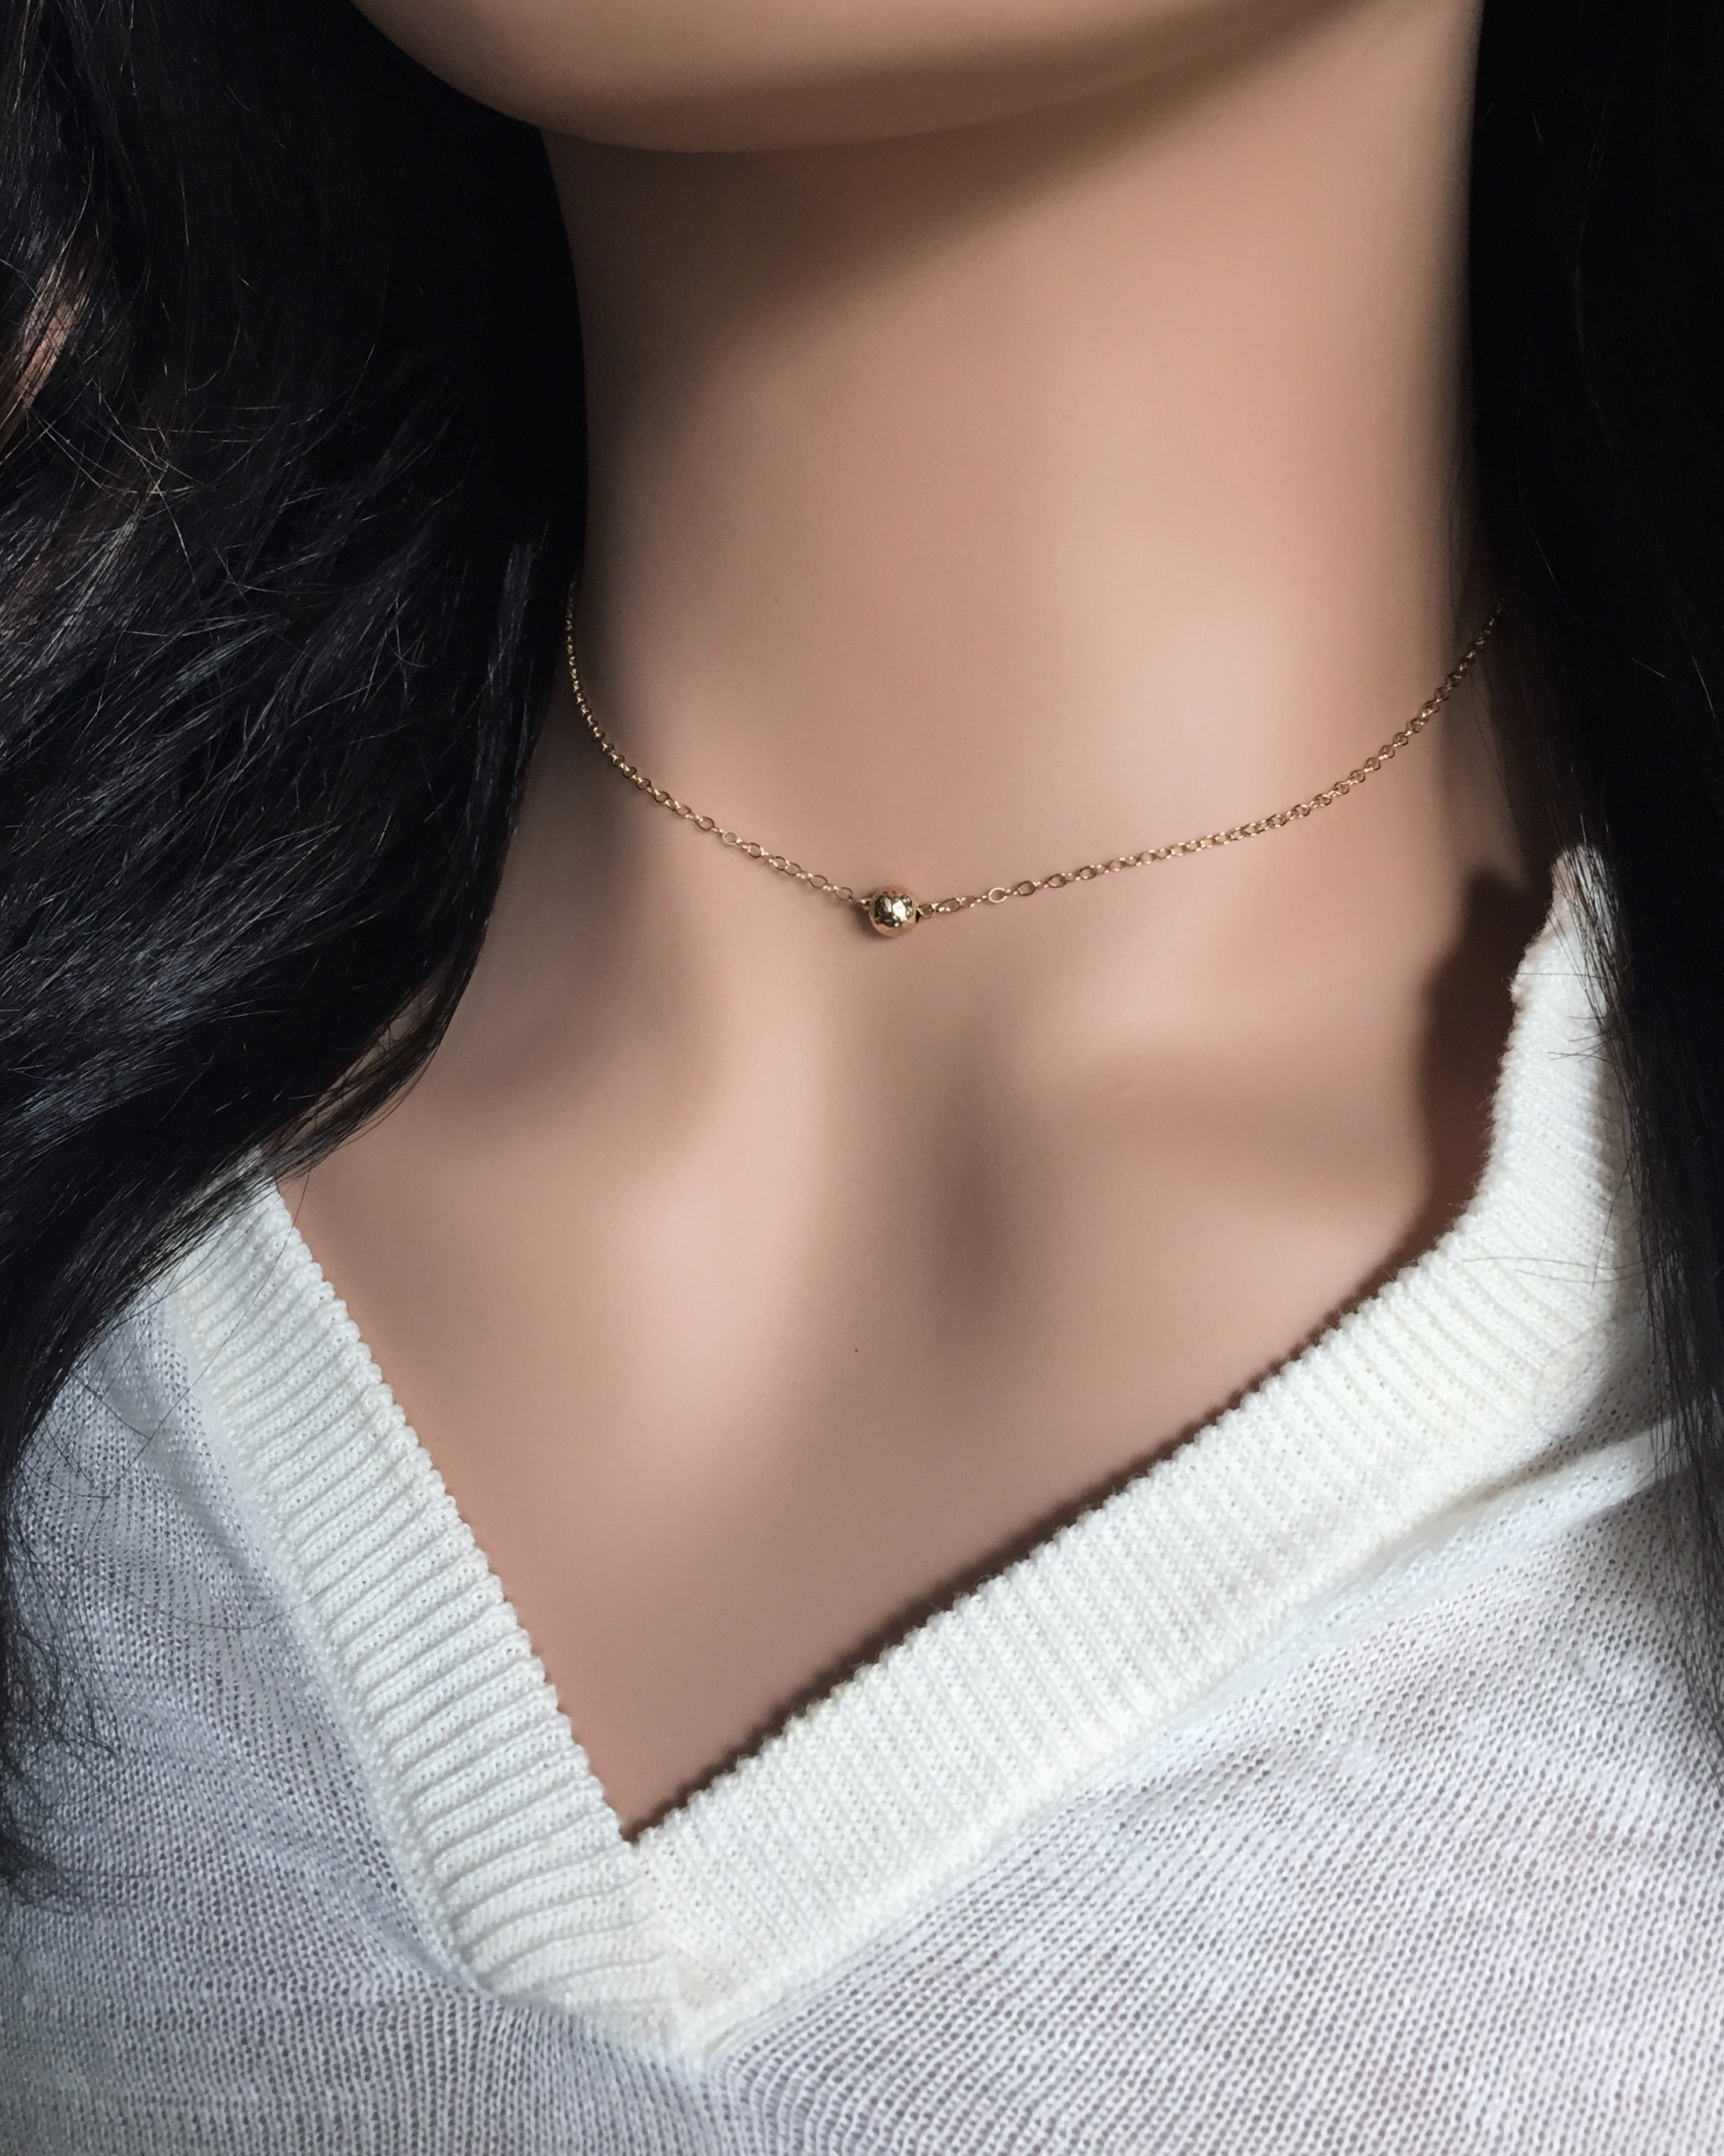 Simple Tiny Ball Necklace | Small Dainty Necklace | IB Jewelry